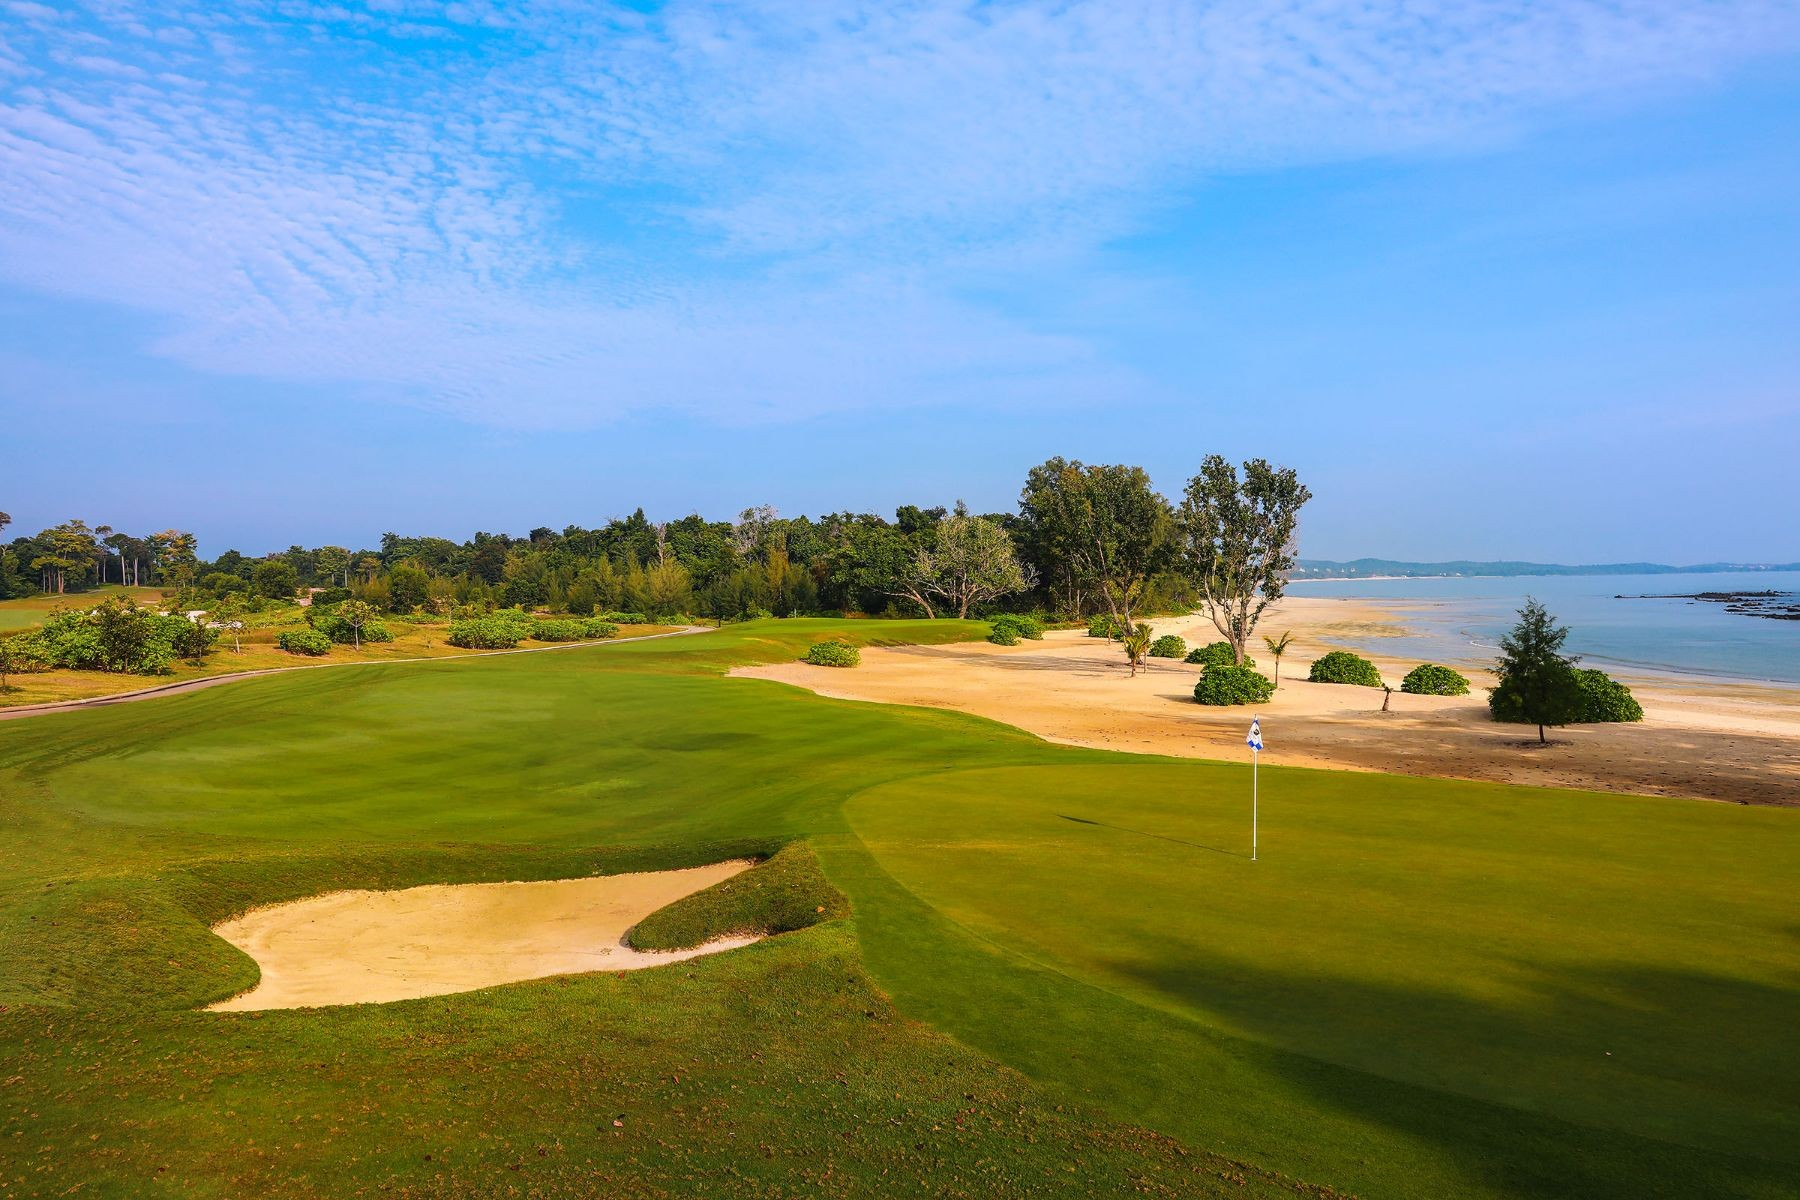 The Els Club Desaru Coast Ocean Course